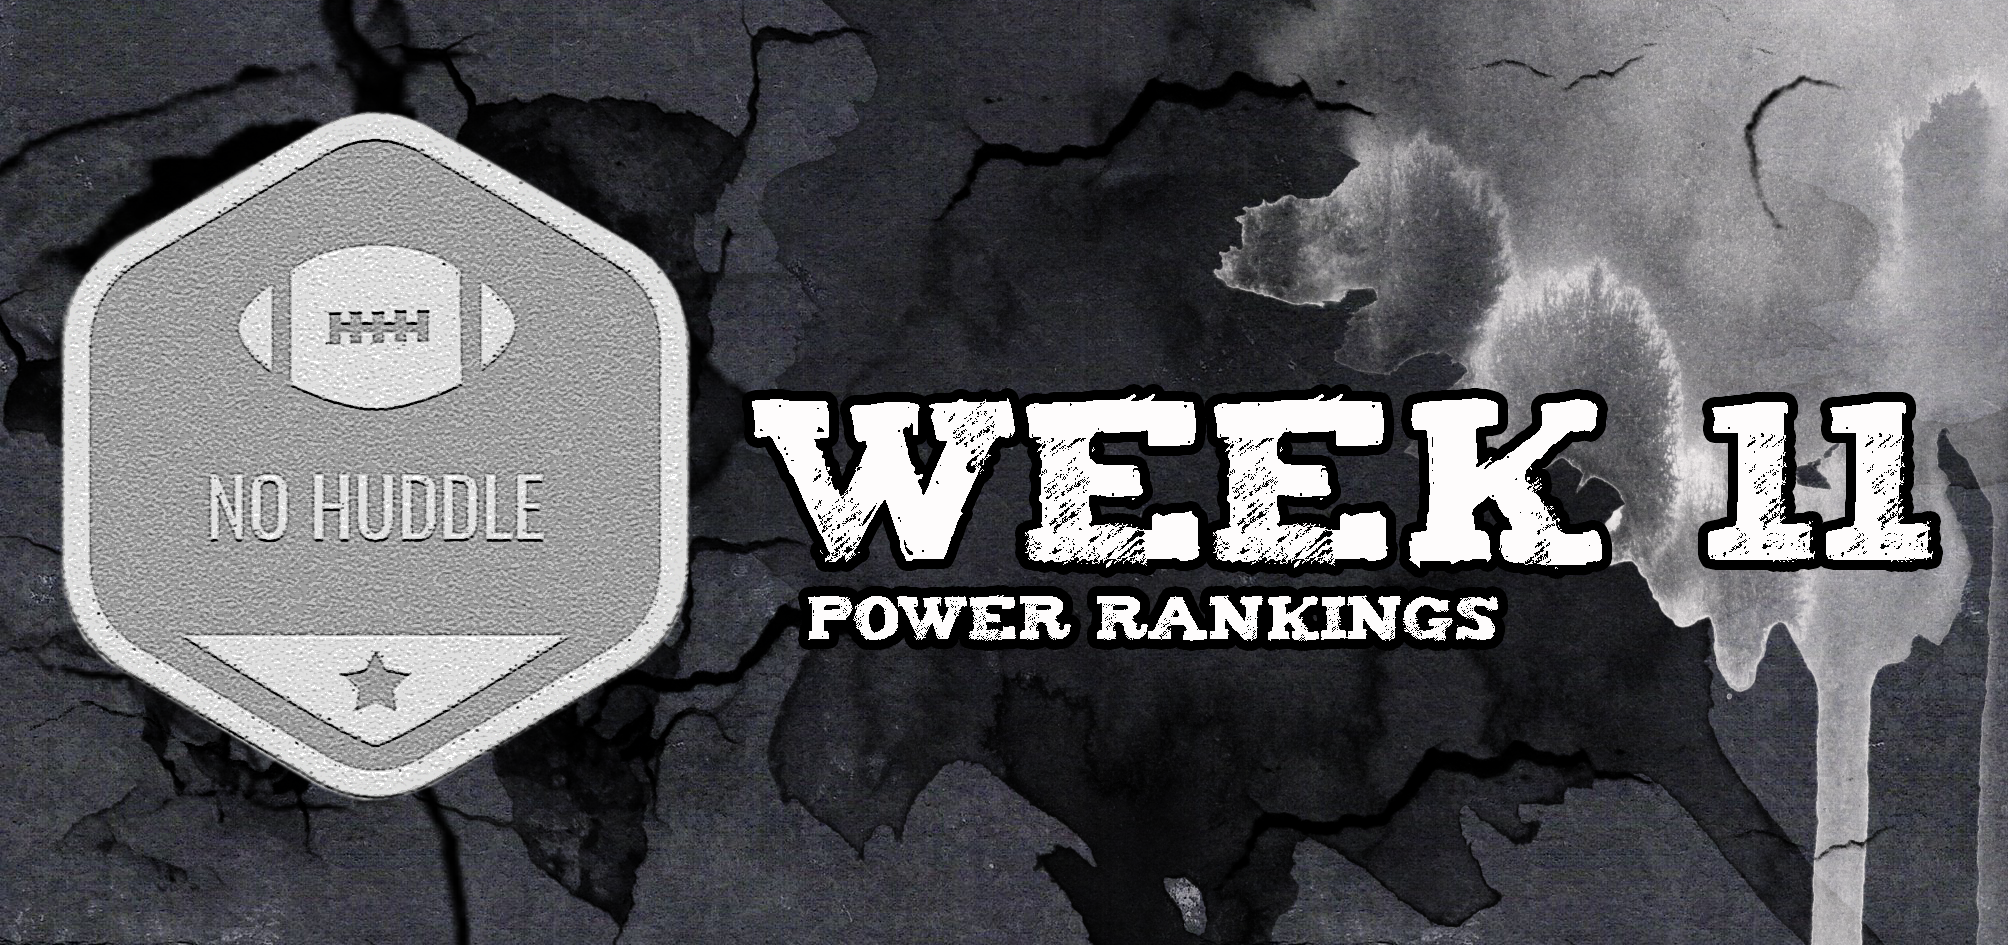 Power Rankings: Semana 11